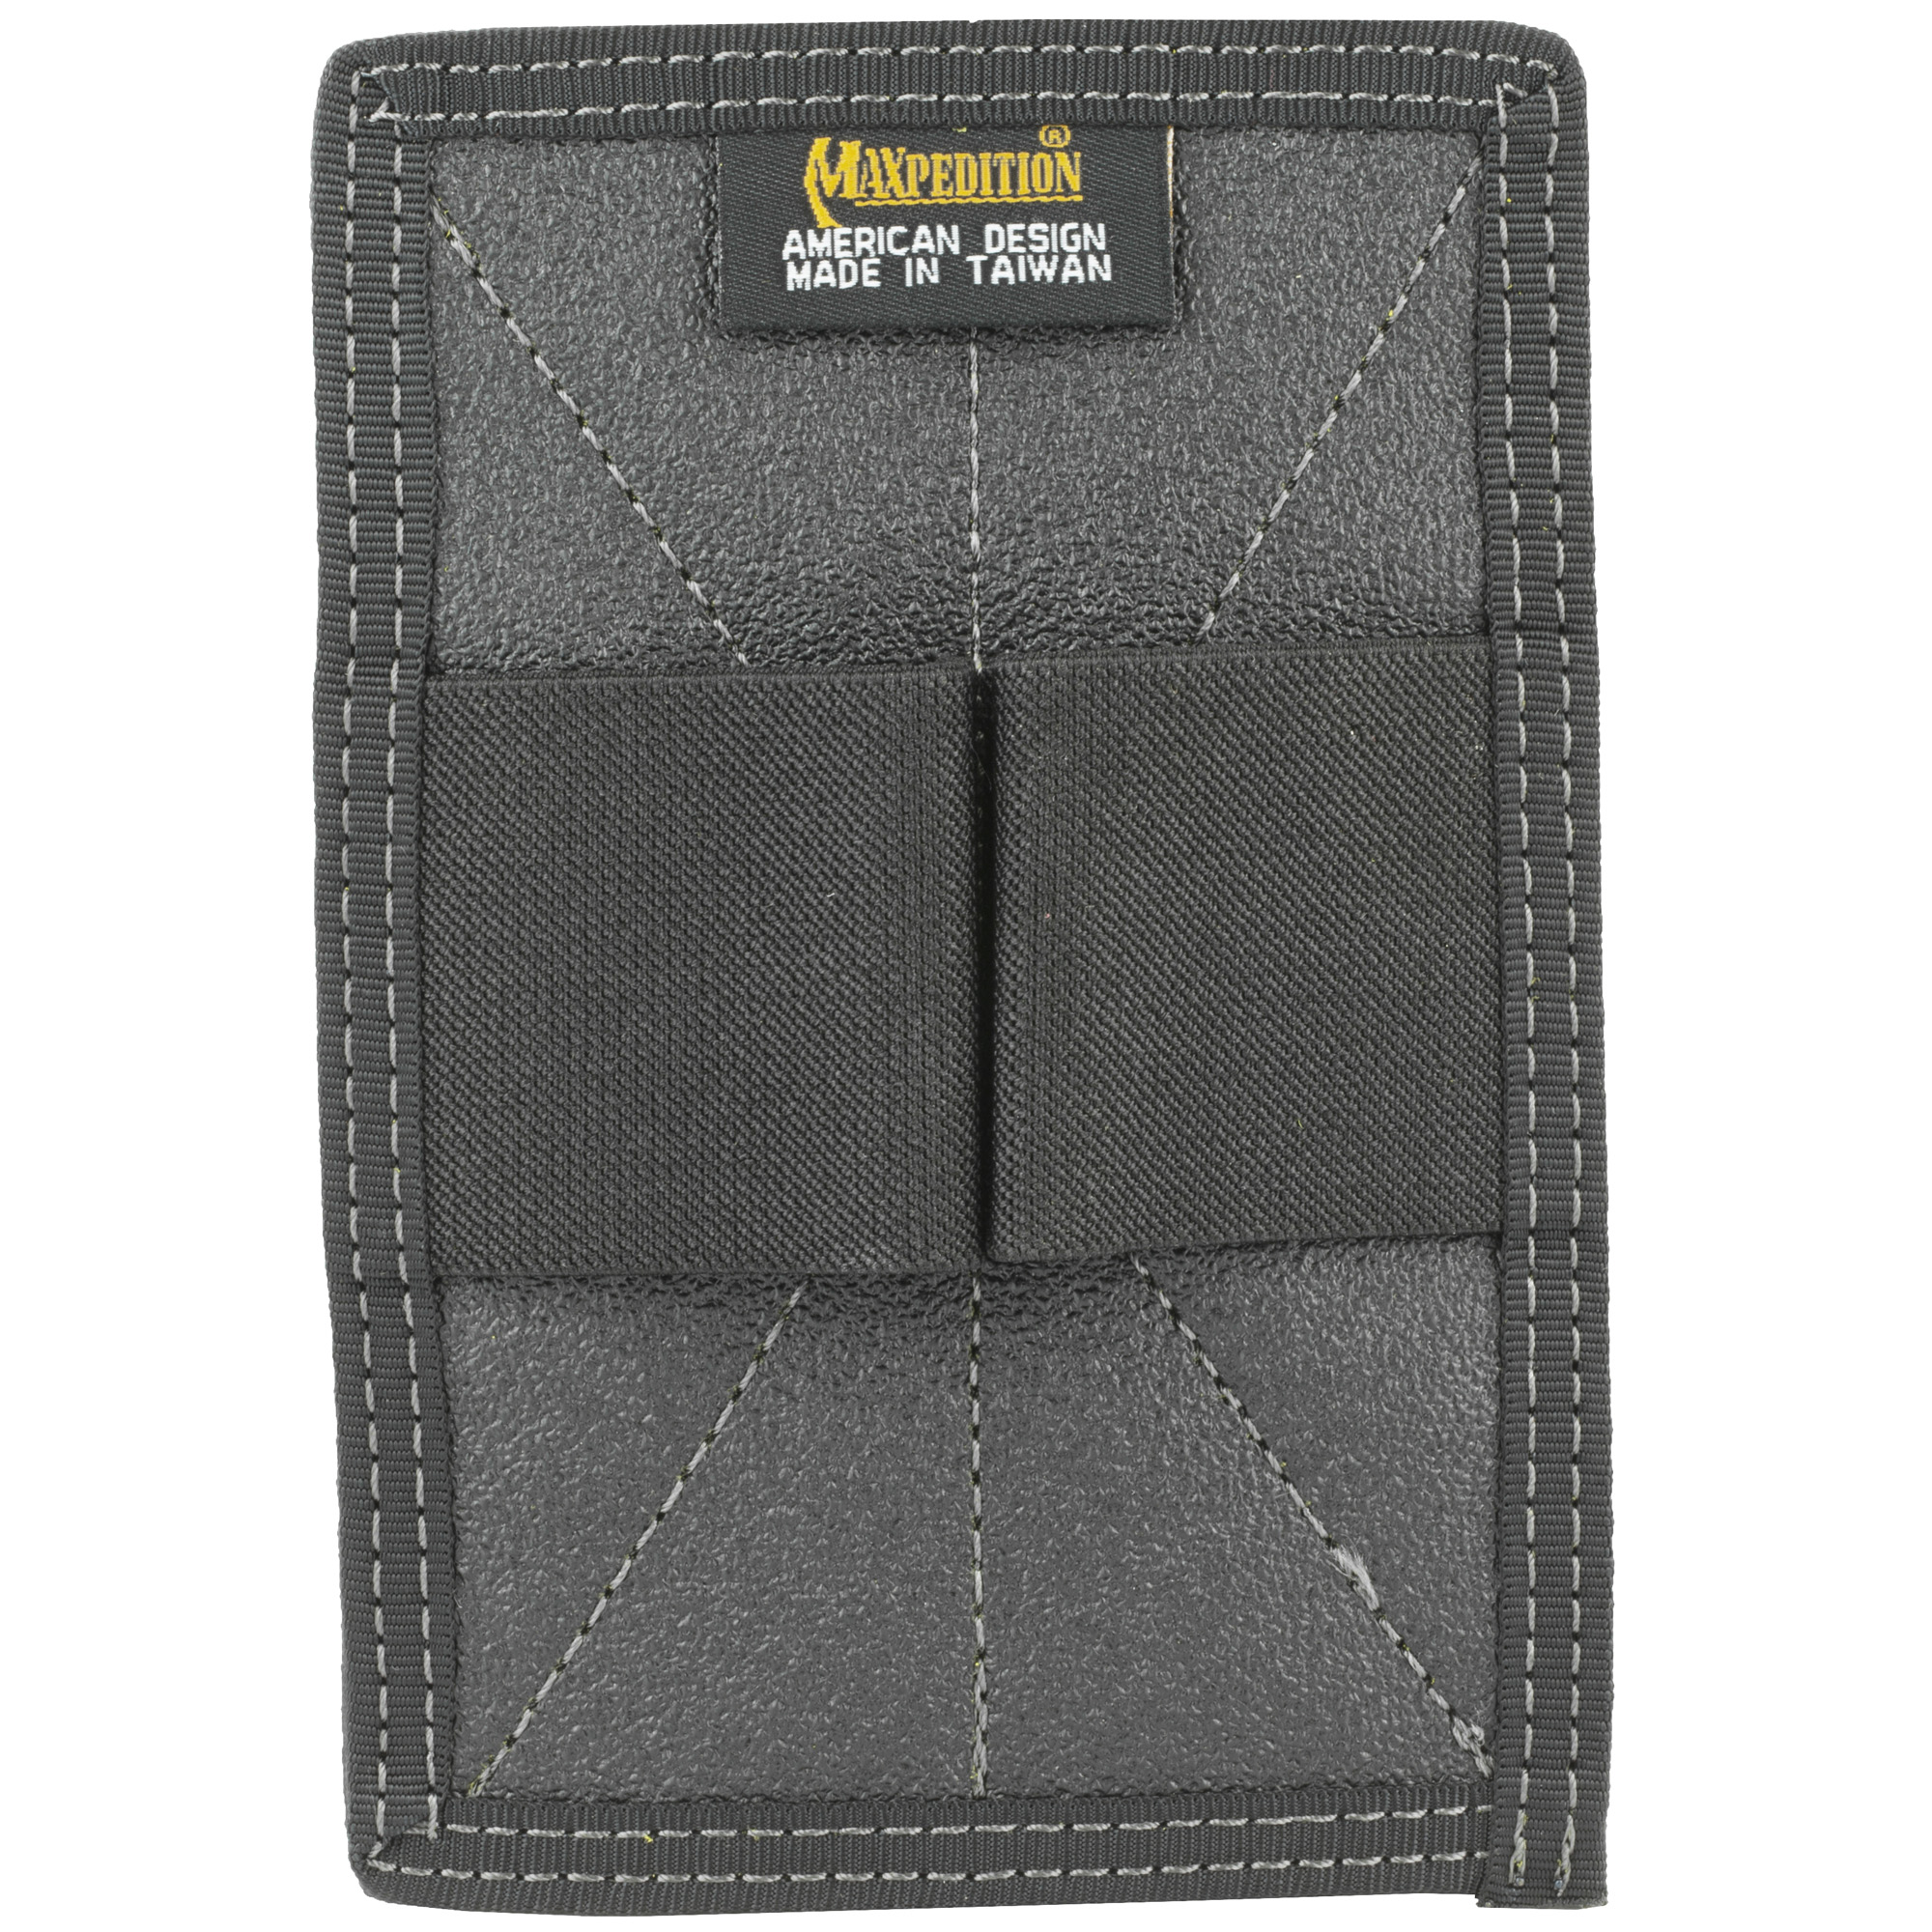 Maxpedition Magazine Pouch Insert, Holds 2 Magazines, Ambidextrous, Bl...